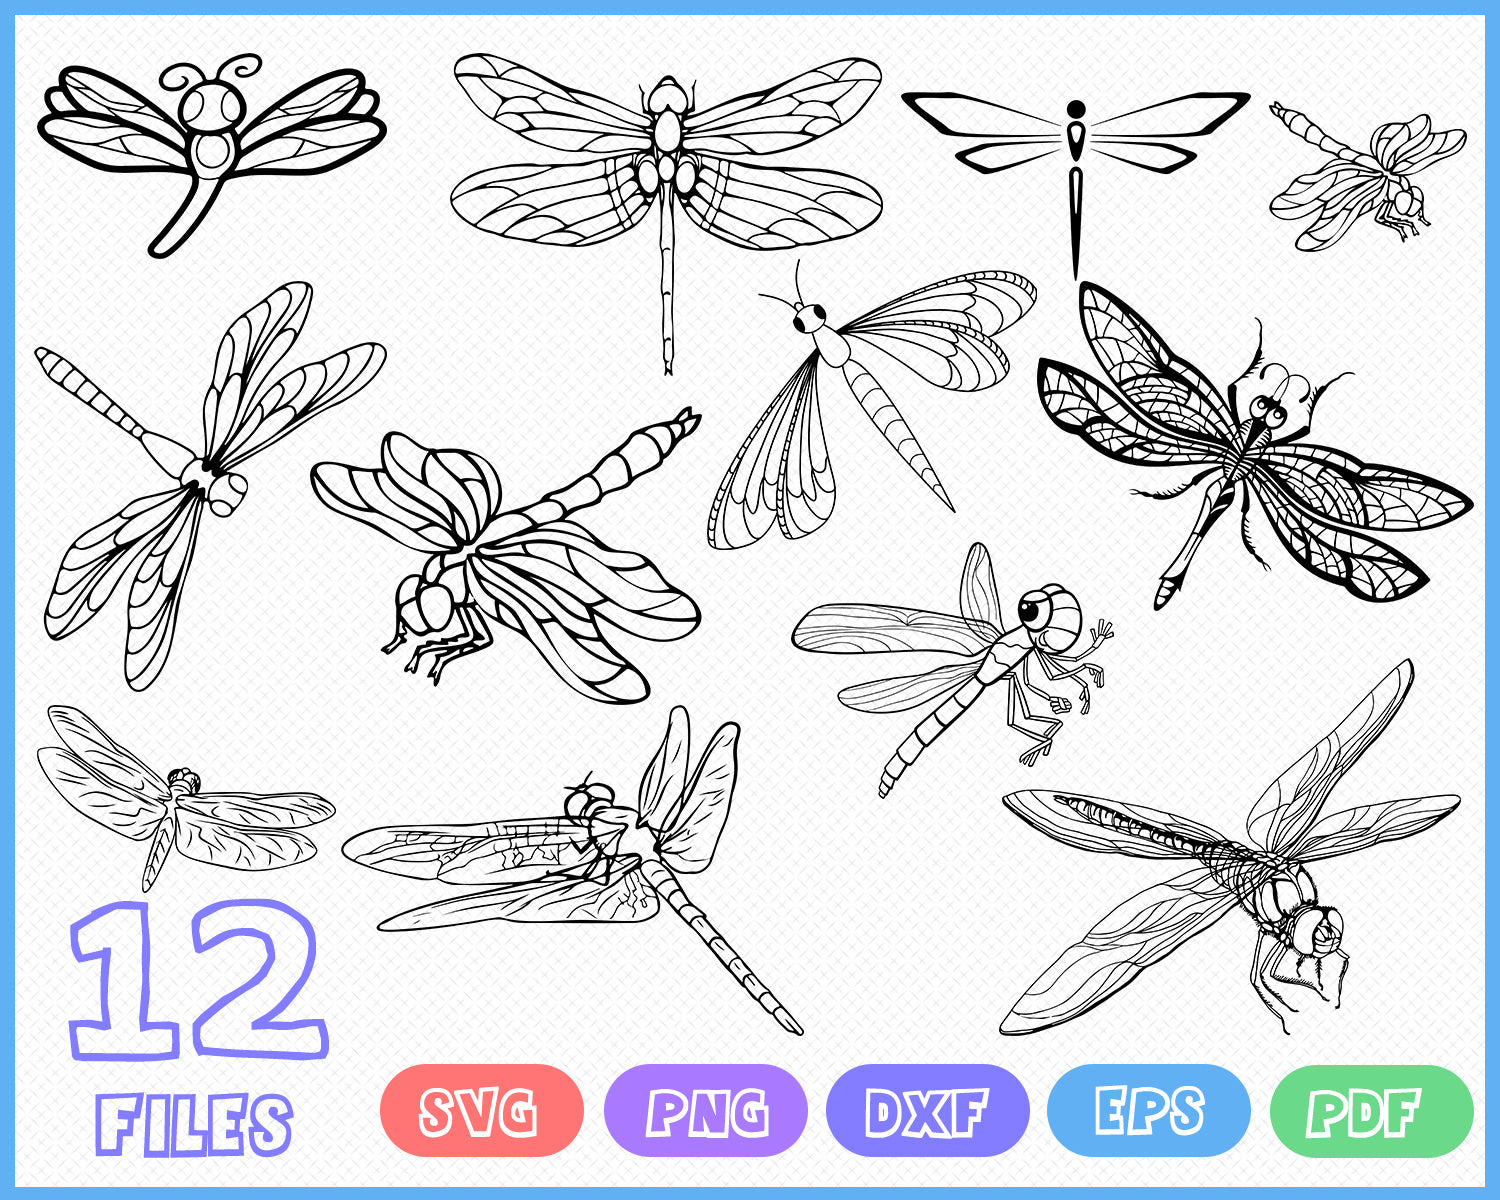 Dragonfly Svg Dragonfly Clipart Insect Svg Pattern Patterned Clipartic